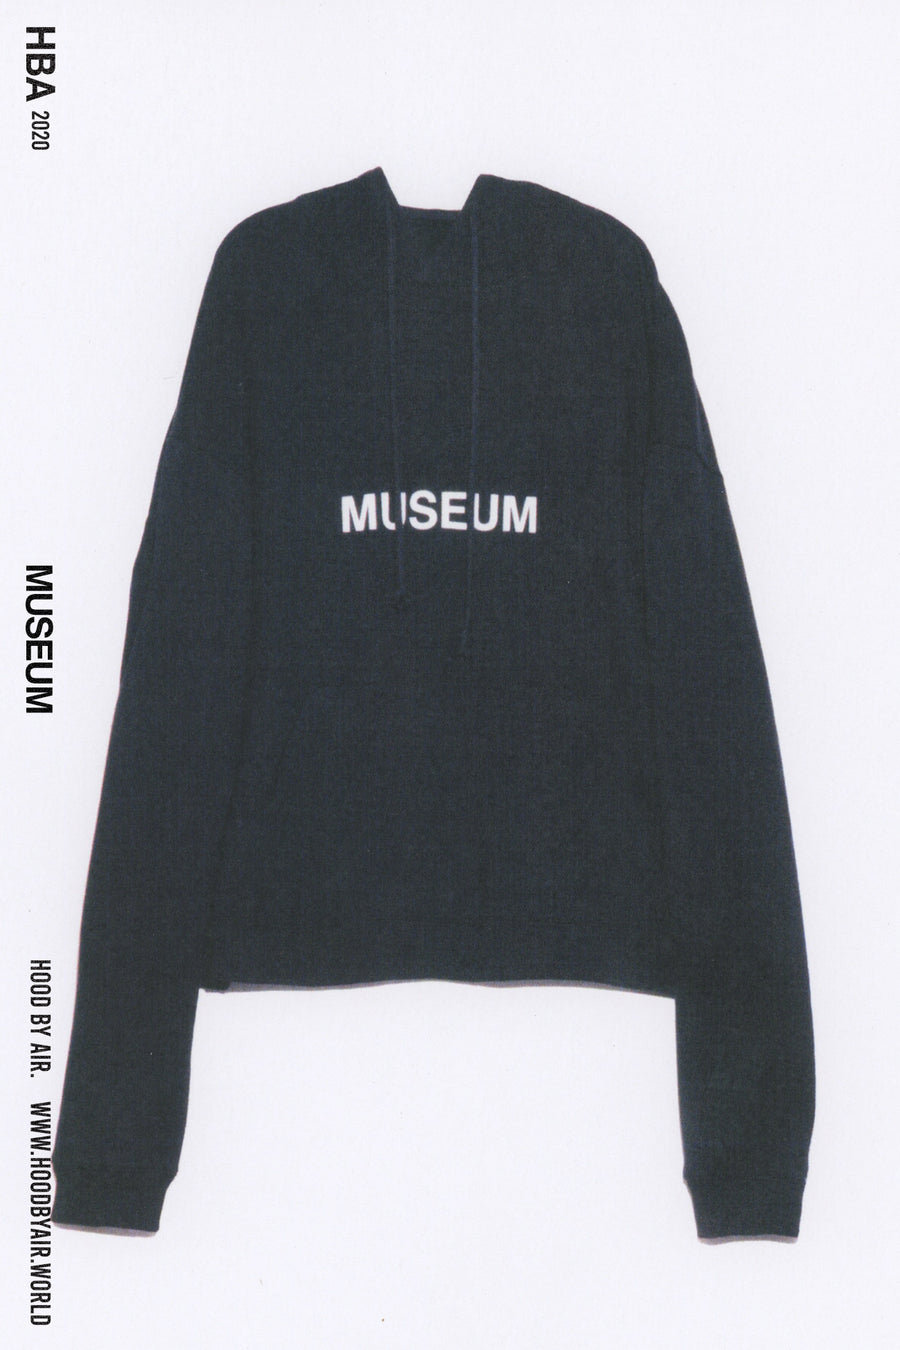 HBA-M-001-01-BL MUSEUM HOODED SWEATSHIRT BLACK